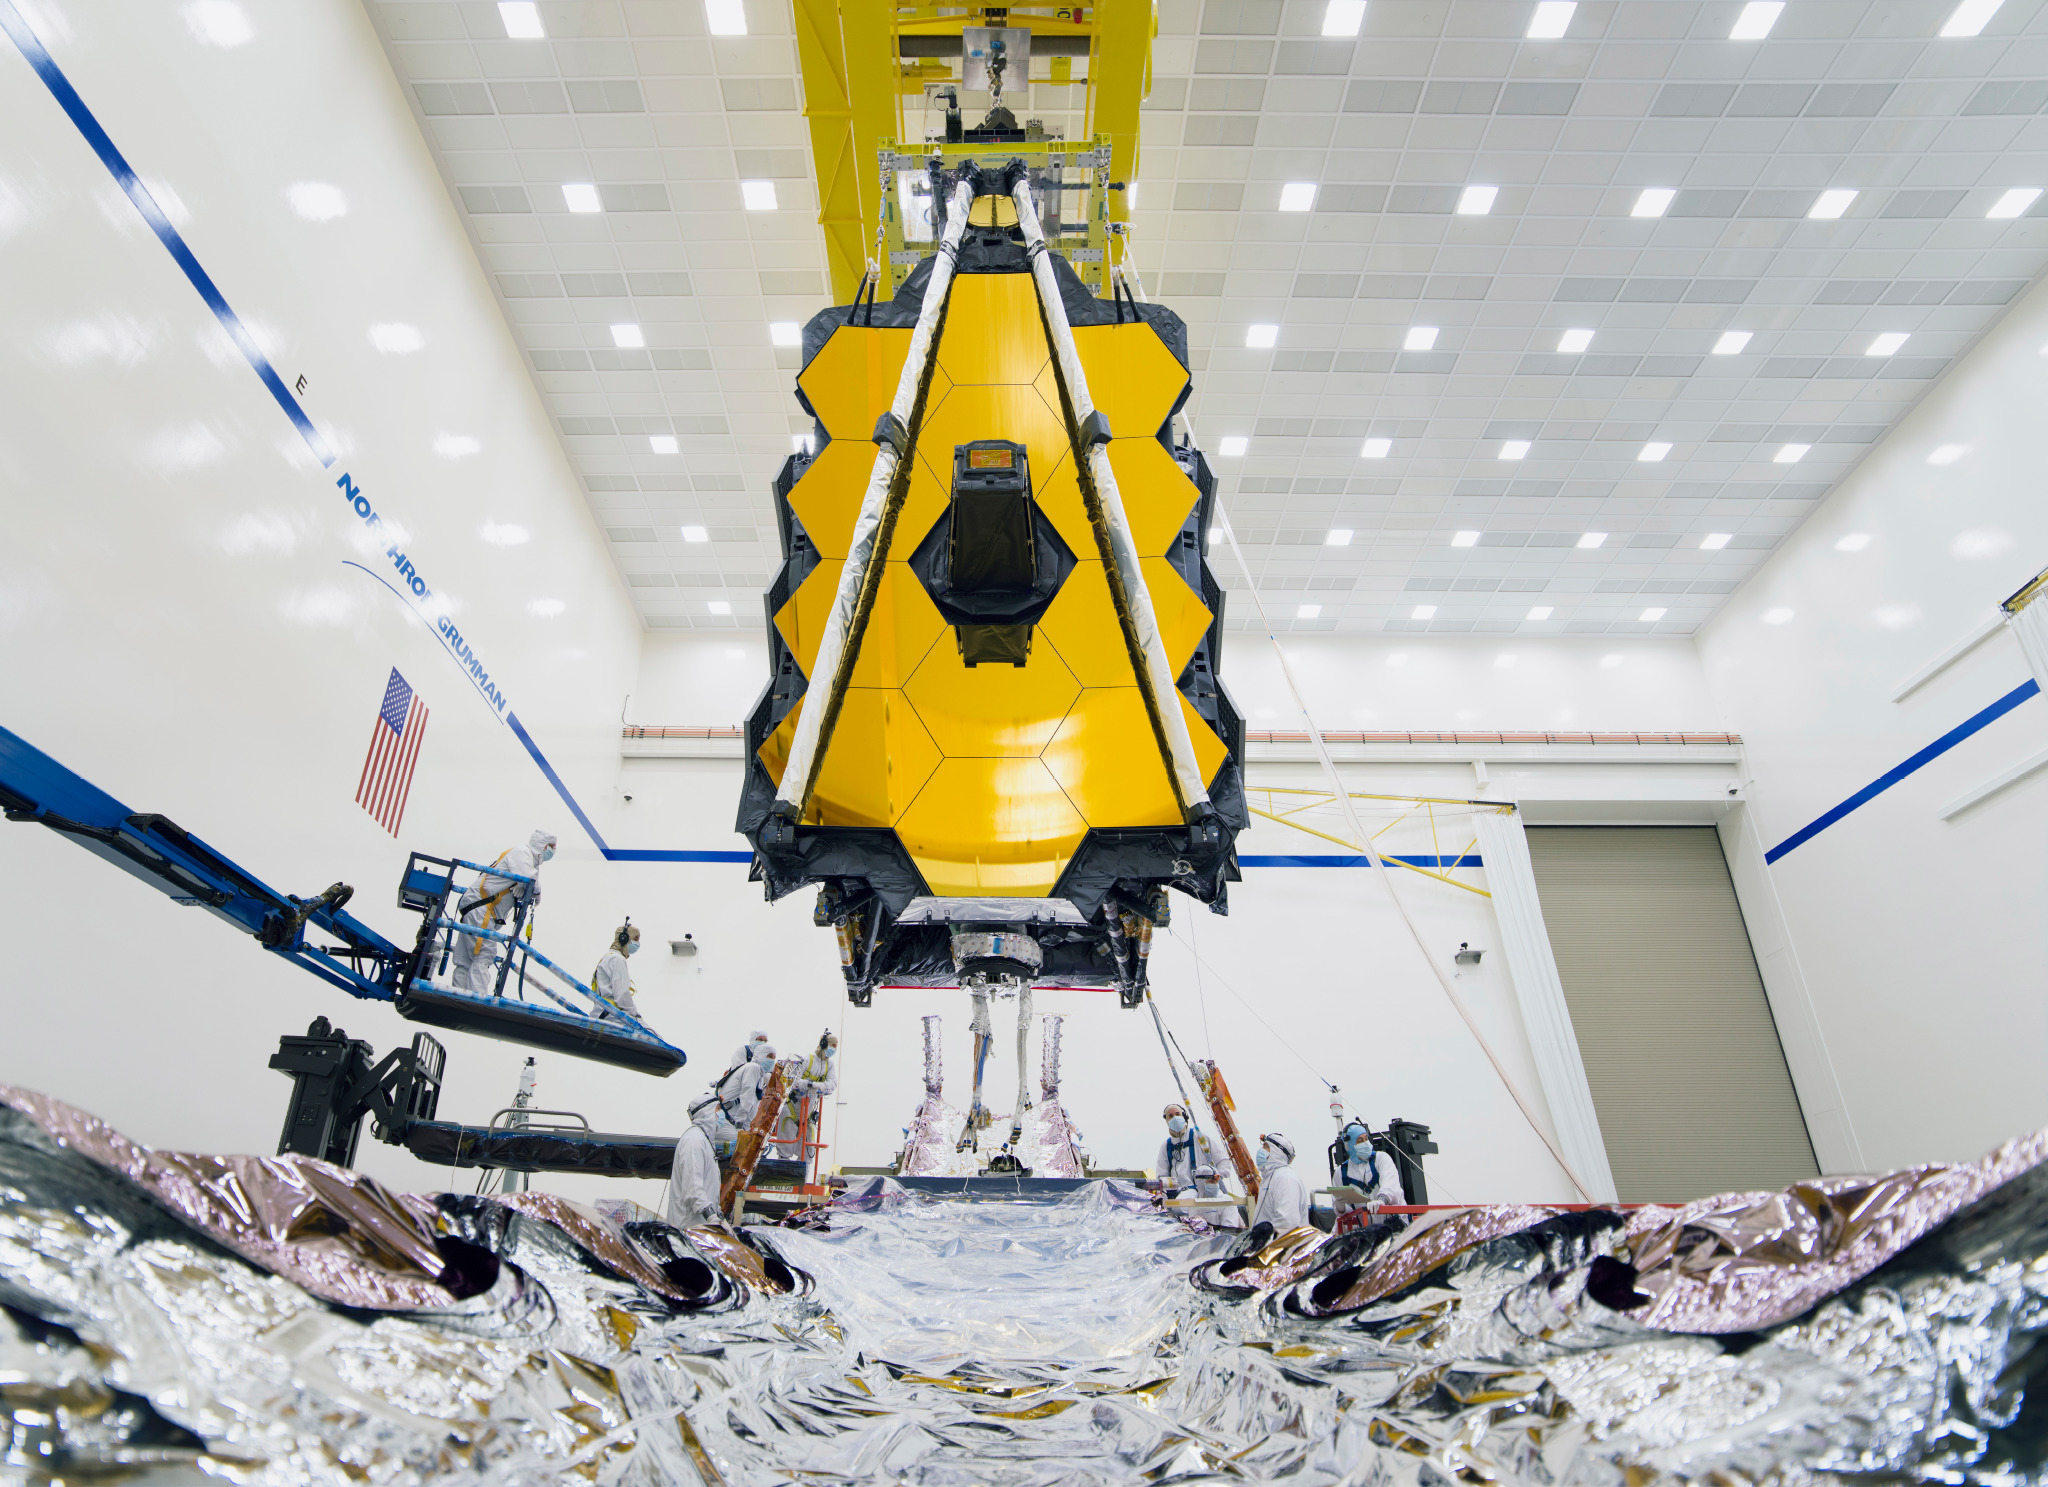 NASA's James Webb Space Telescope is finally complete